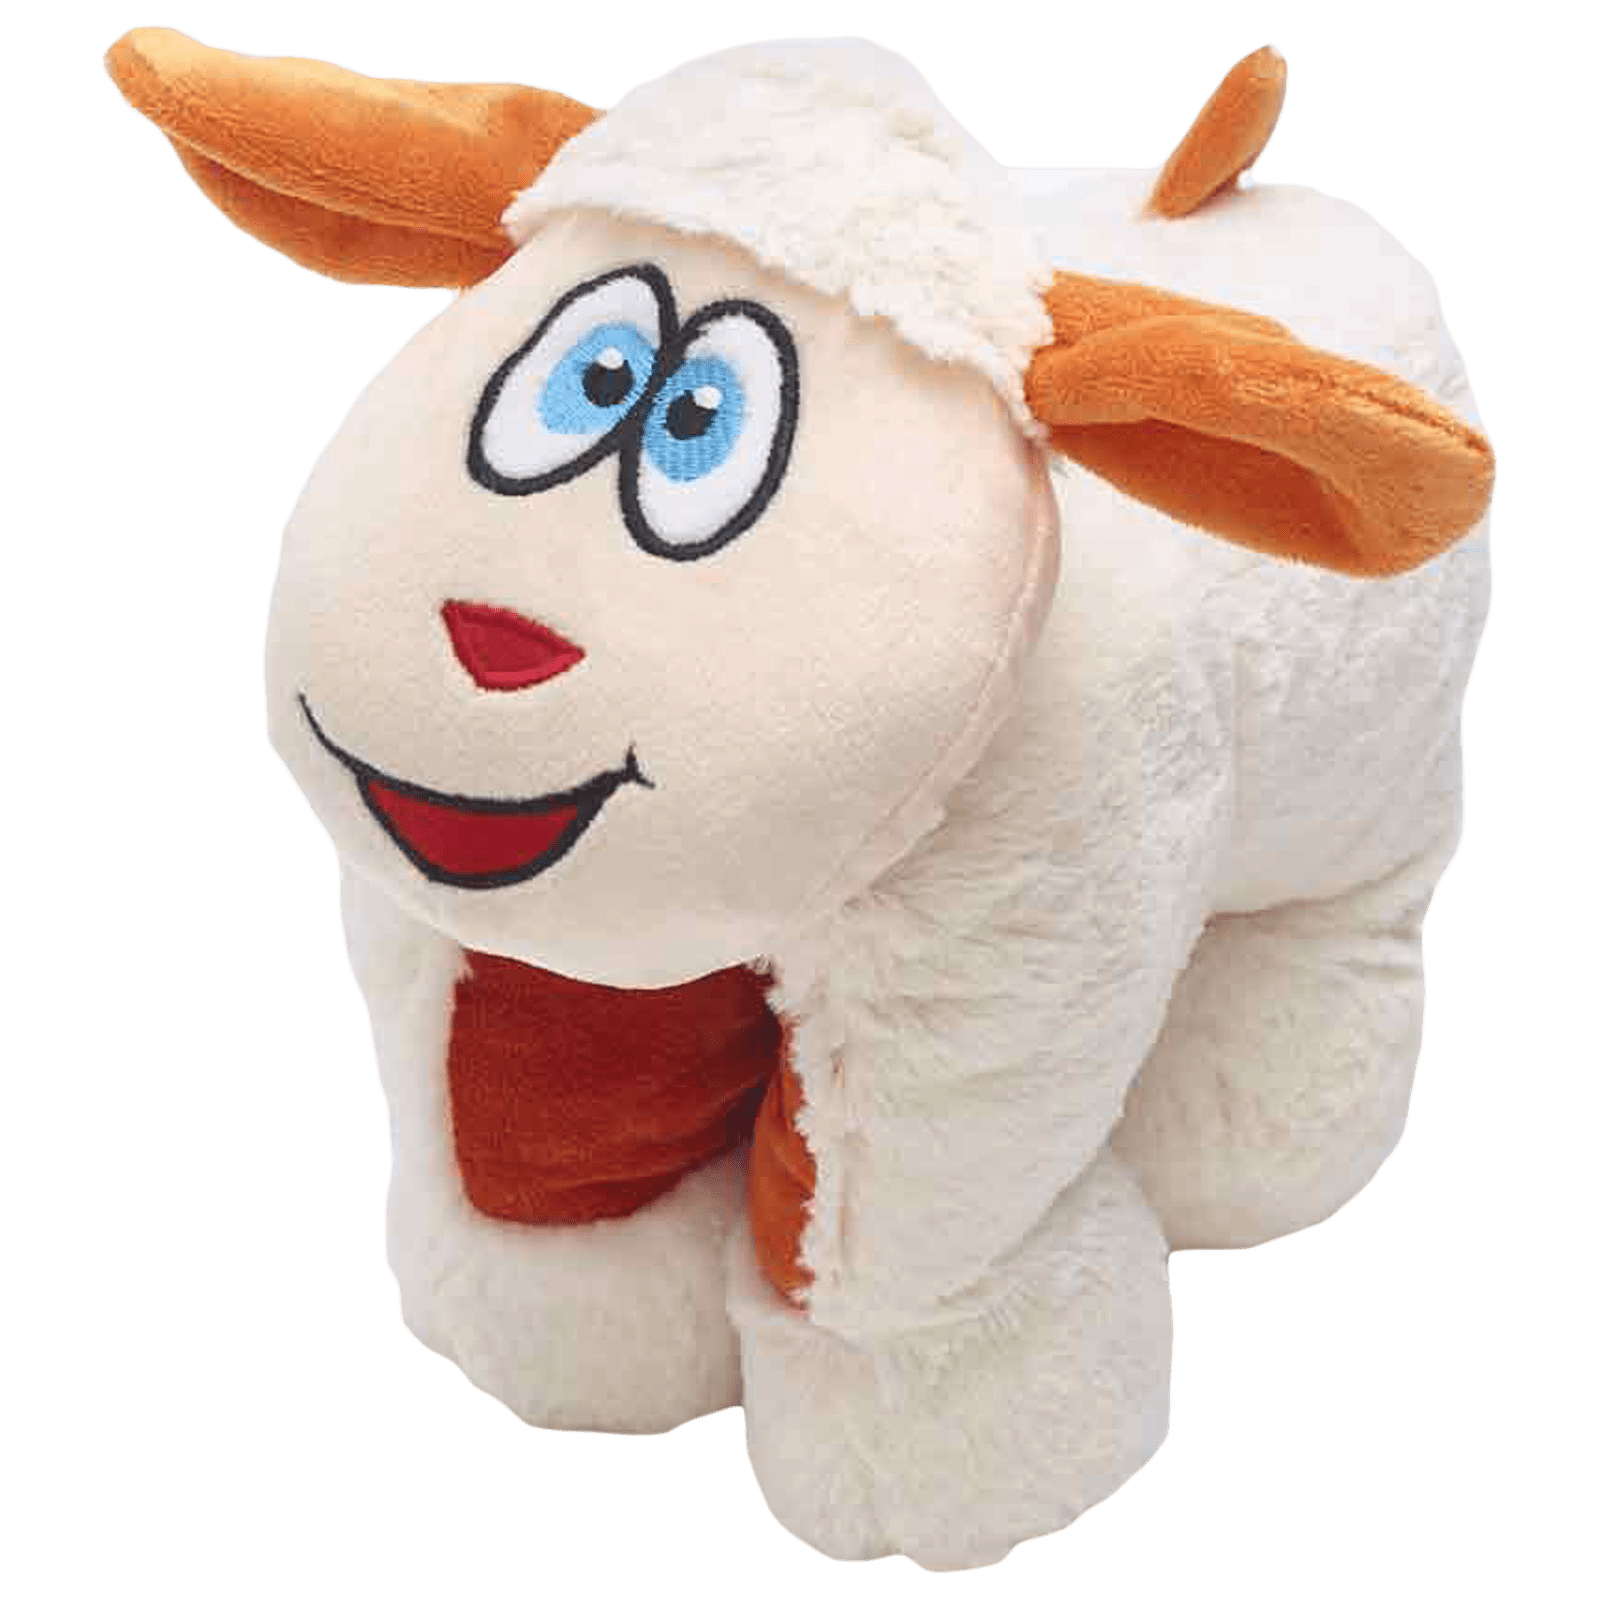 Travel Blue Snowy The Sheep Polyester Neck Pillow (Soft and Comfortable, Multicolor)